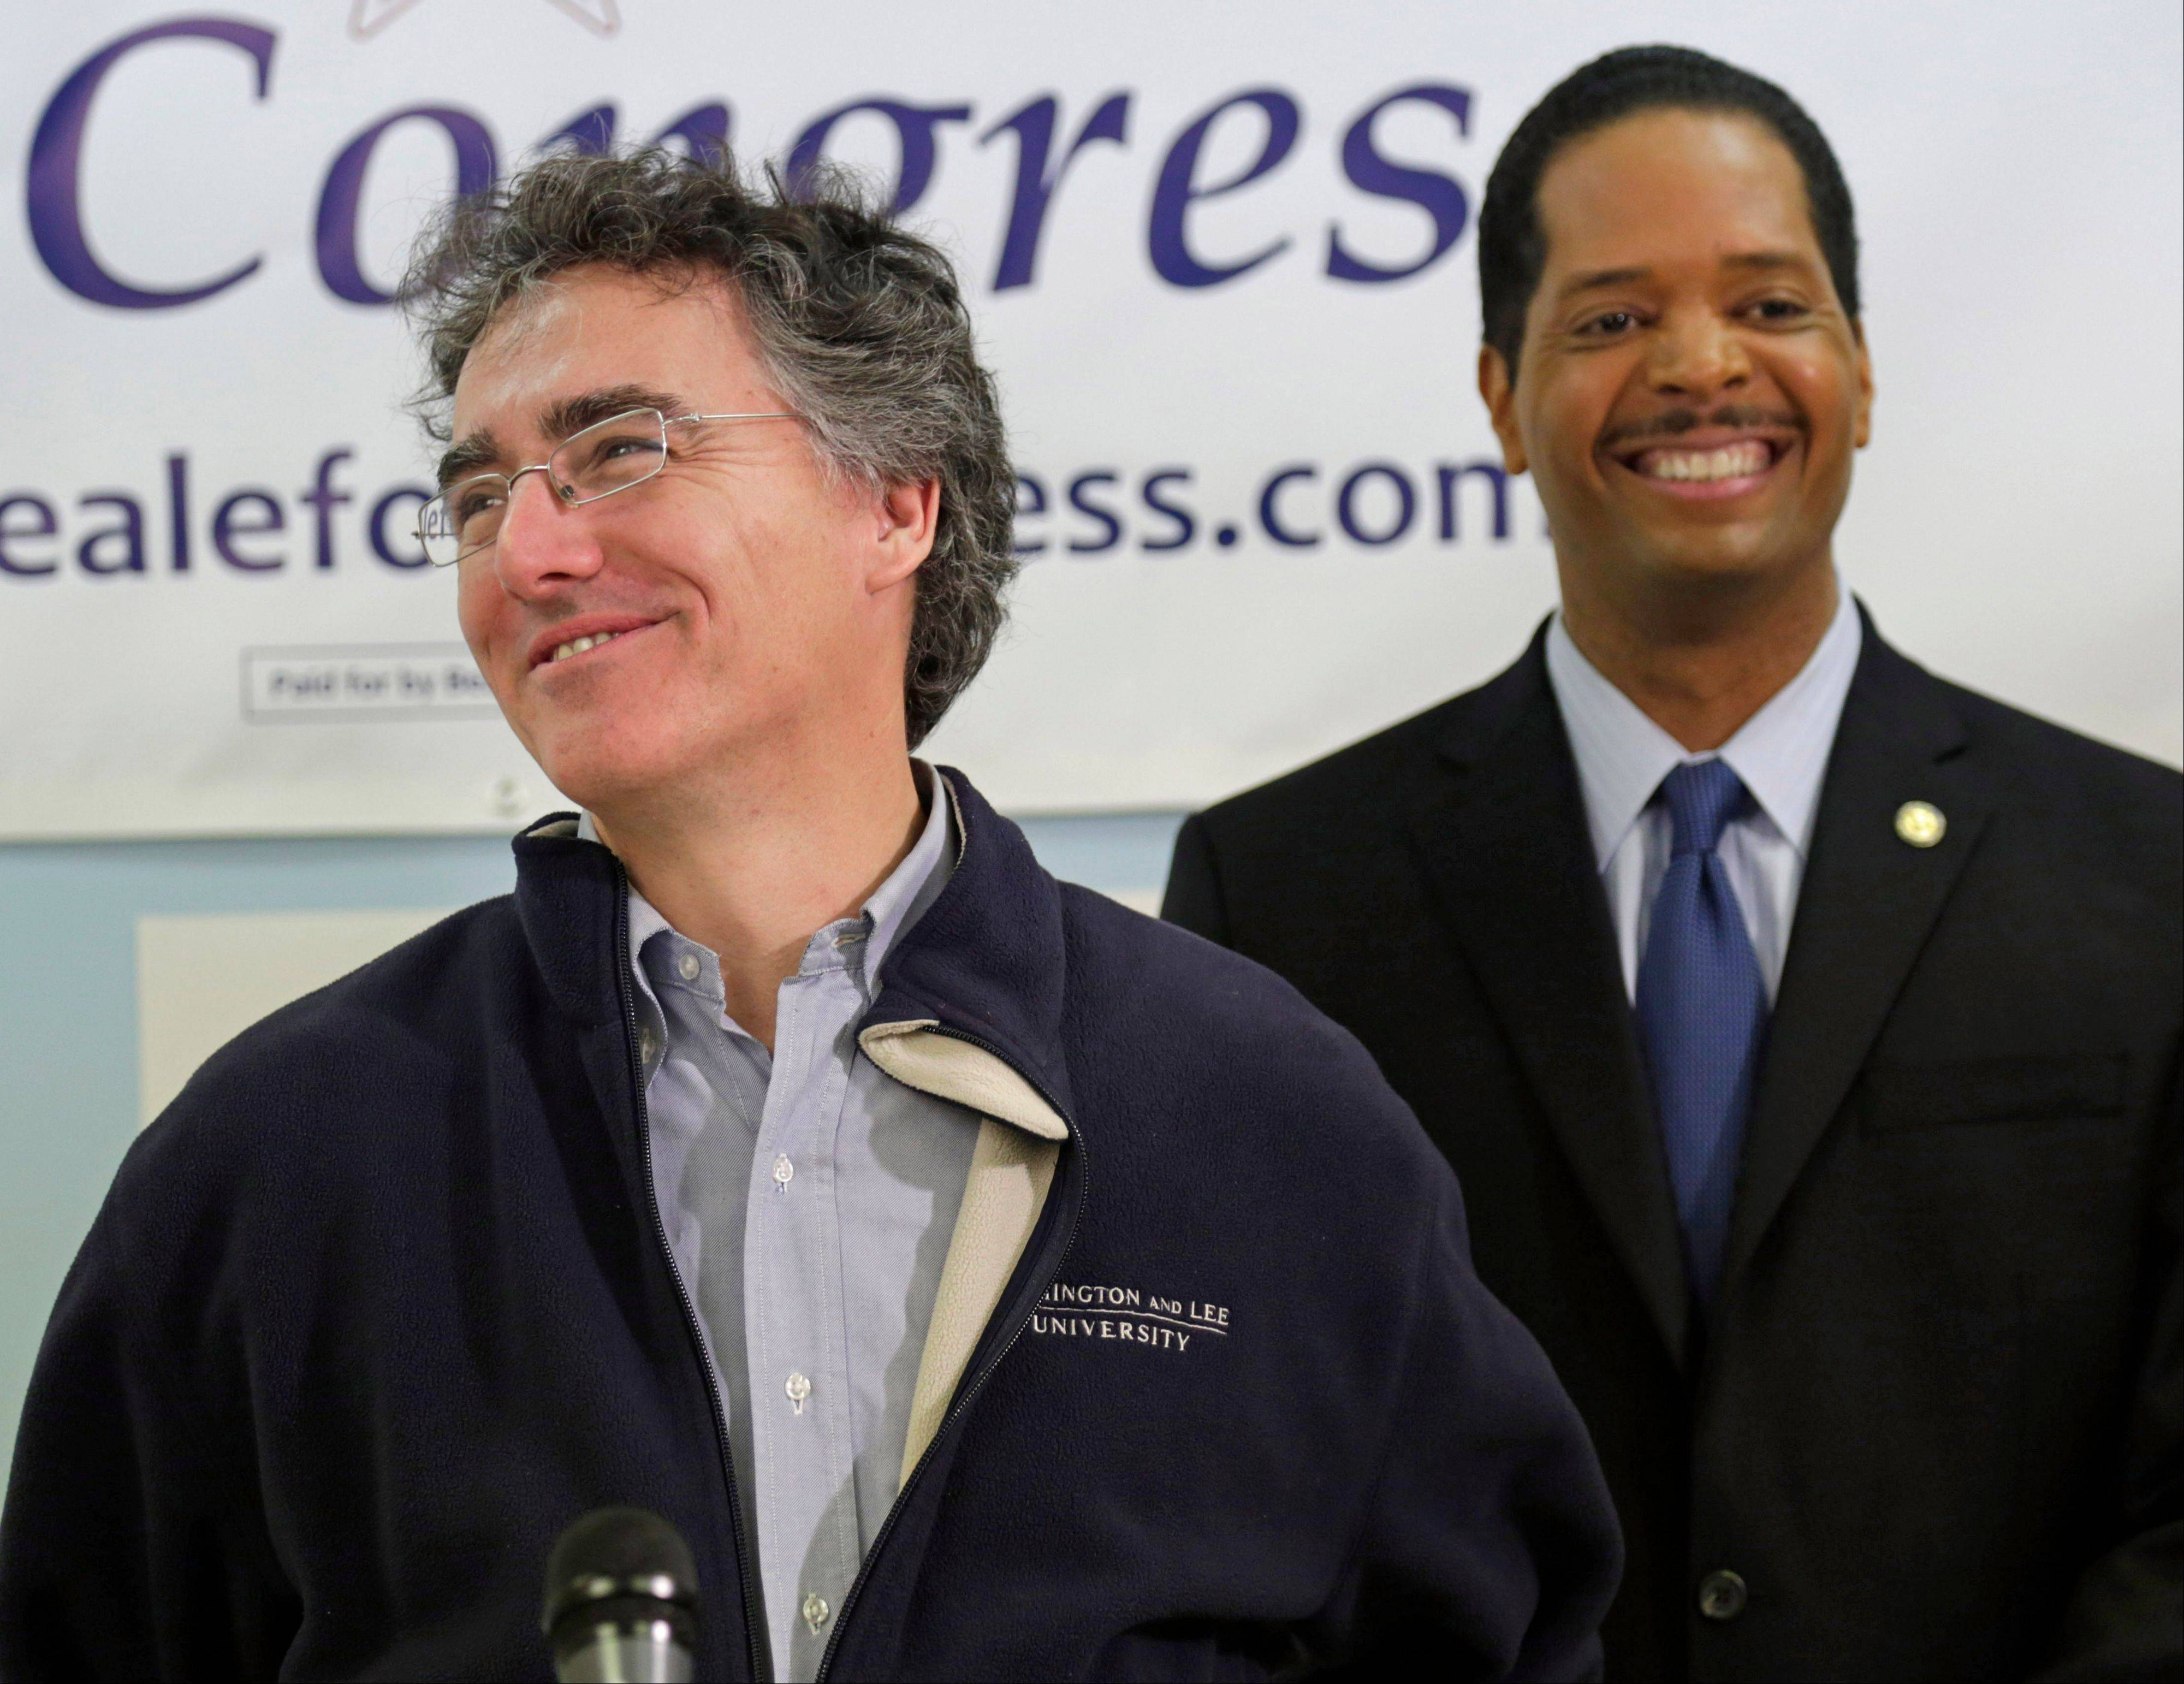 Cook County Sheriff Tom Dart, left, and Democratic congressional hopeful Anthony Beale share a light moment at a news conference Thursday in Chicago. Dart endorses the Chicago alderman in his bid to replace former U.S. Rep. Jesse Jackson Jr. in Illinois' 2nd Congressional District.